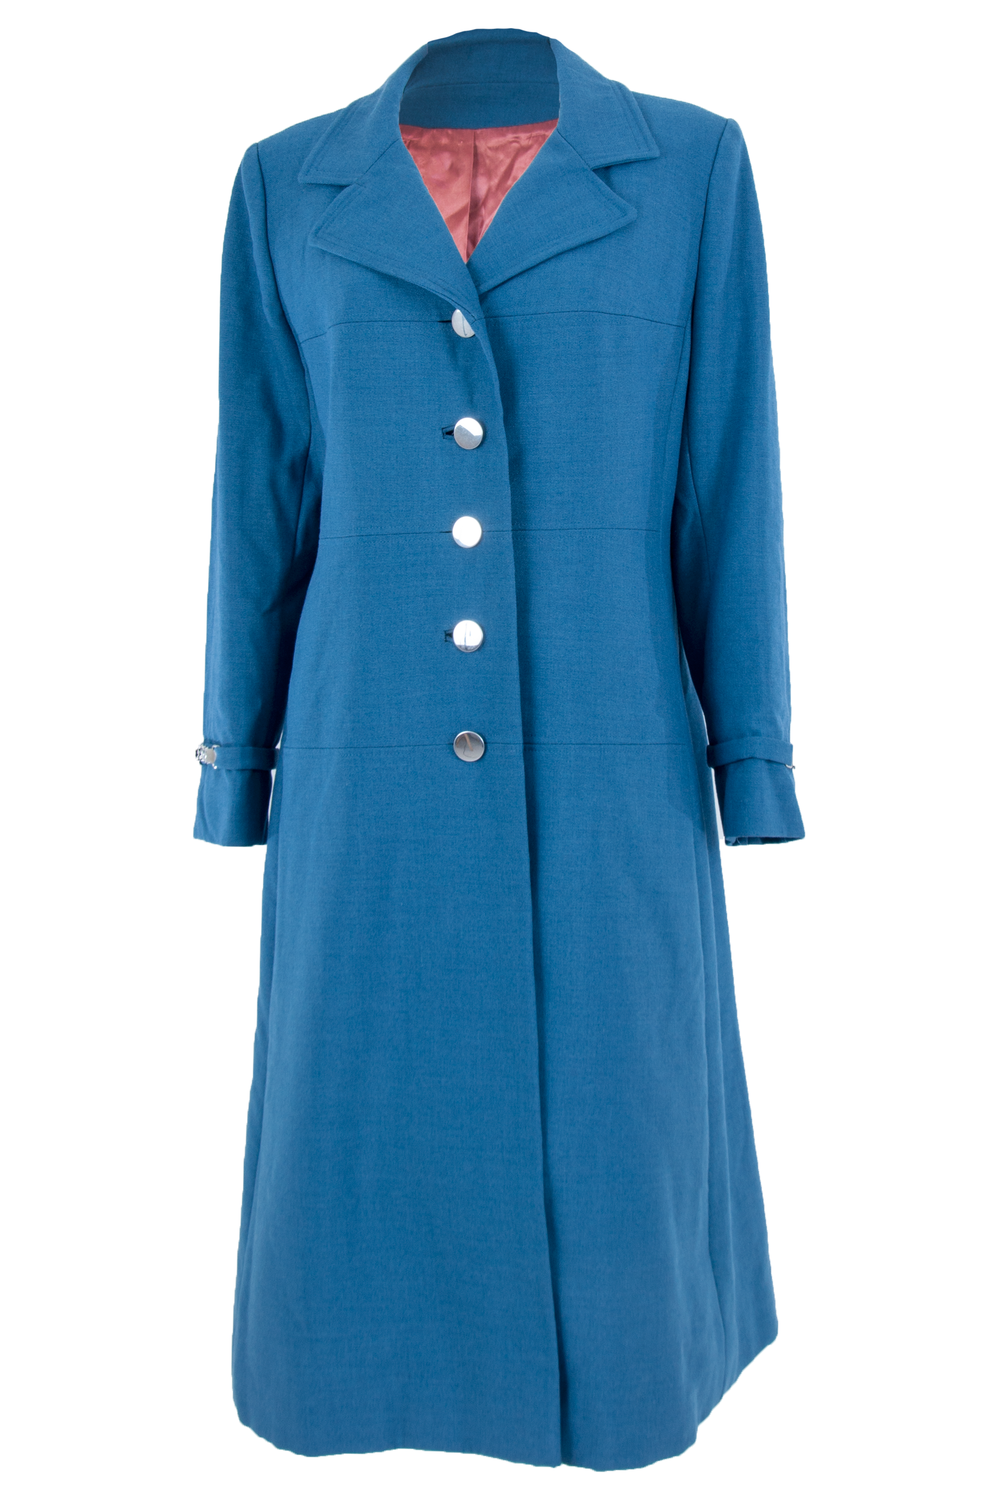 blue vintage coat with silver buttons and orange lining